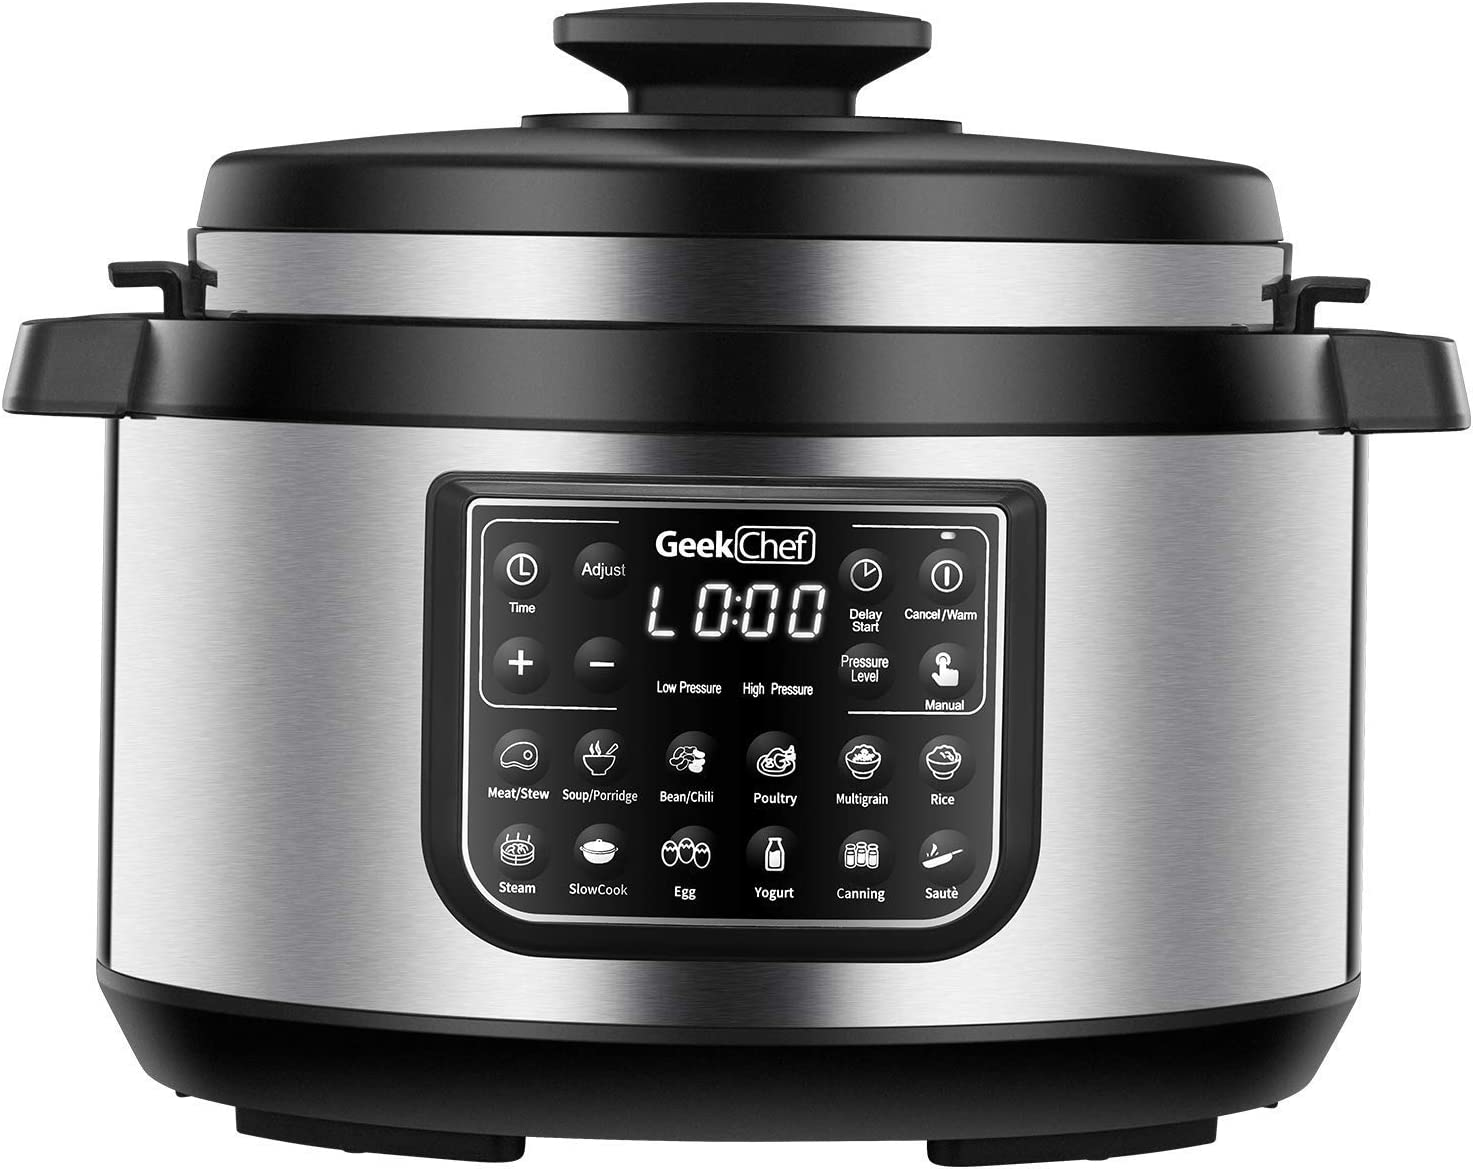 Geek Chef 8 Qt 12-in-i Multiuse Programmable Electric Pressure Cooker Oval, Slow Cooker, Rice Cooker, Steamer, Sauté, Yogurt Maker and Warmer, Non-Stick Pot Has Cool-Touch Handles, EZ-Lock (GP80Plus) (Renewed)